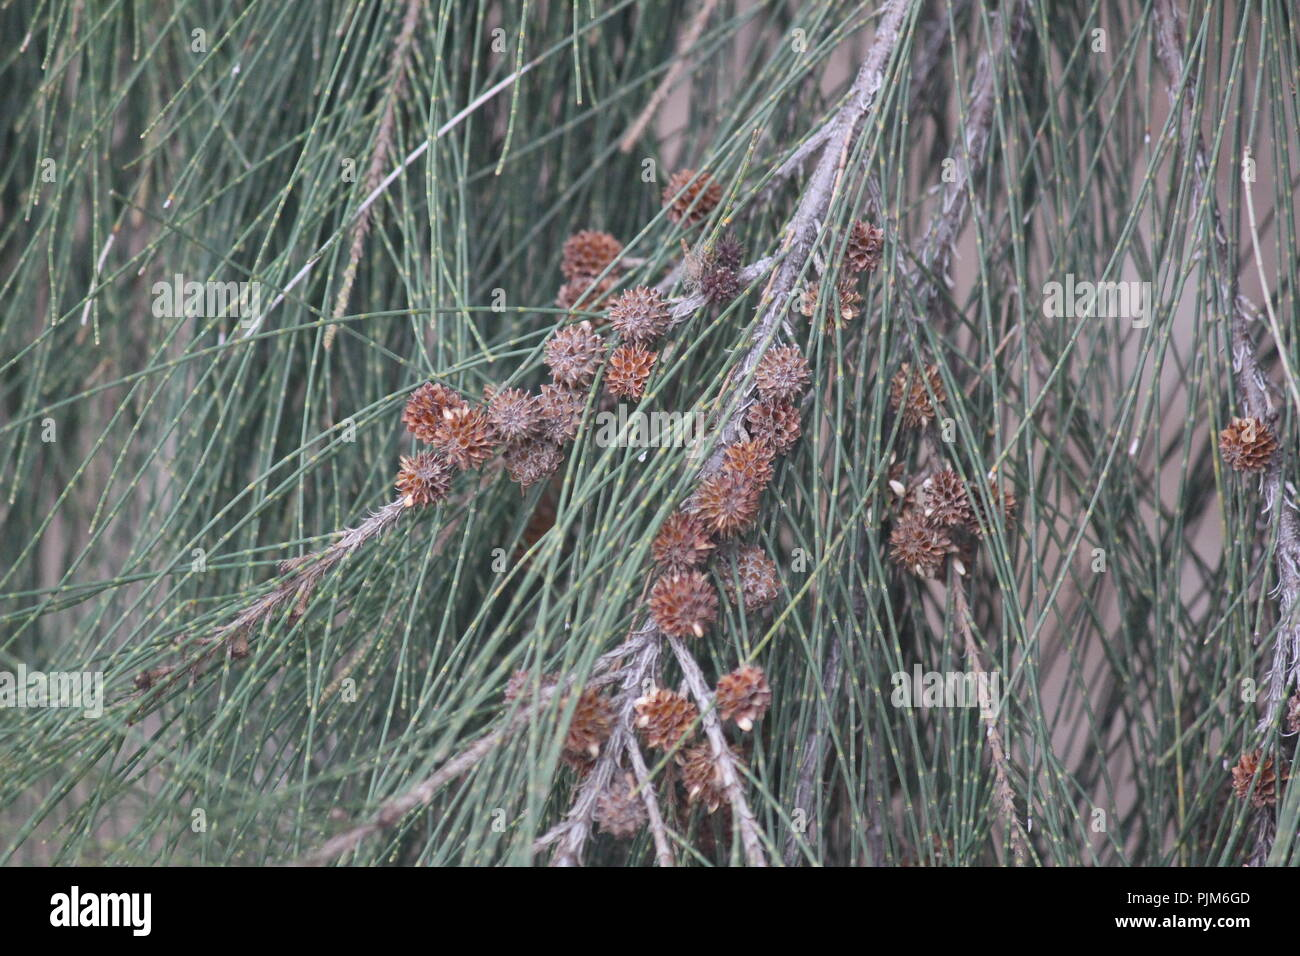 Casuarina branch, foliage and cone-like fruiting bodies in Queanbeyan, NSW, Australia. - Stock Image